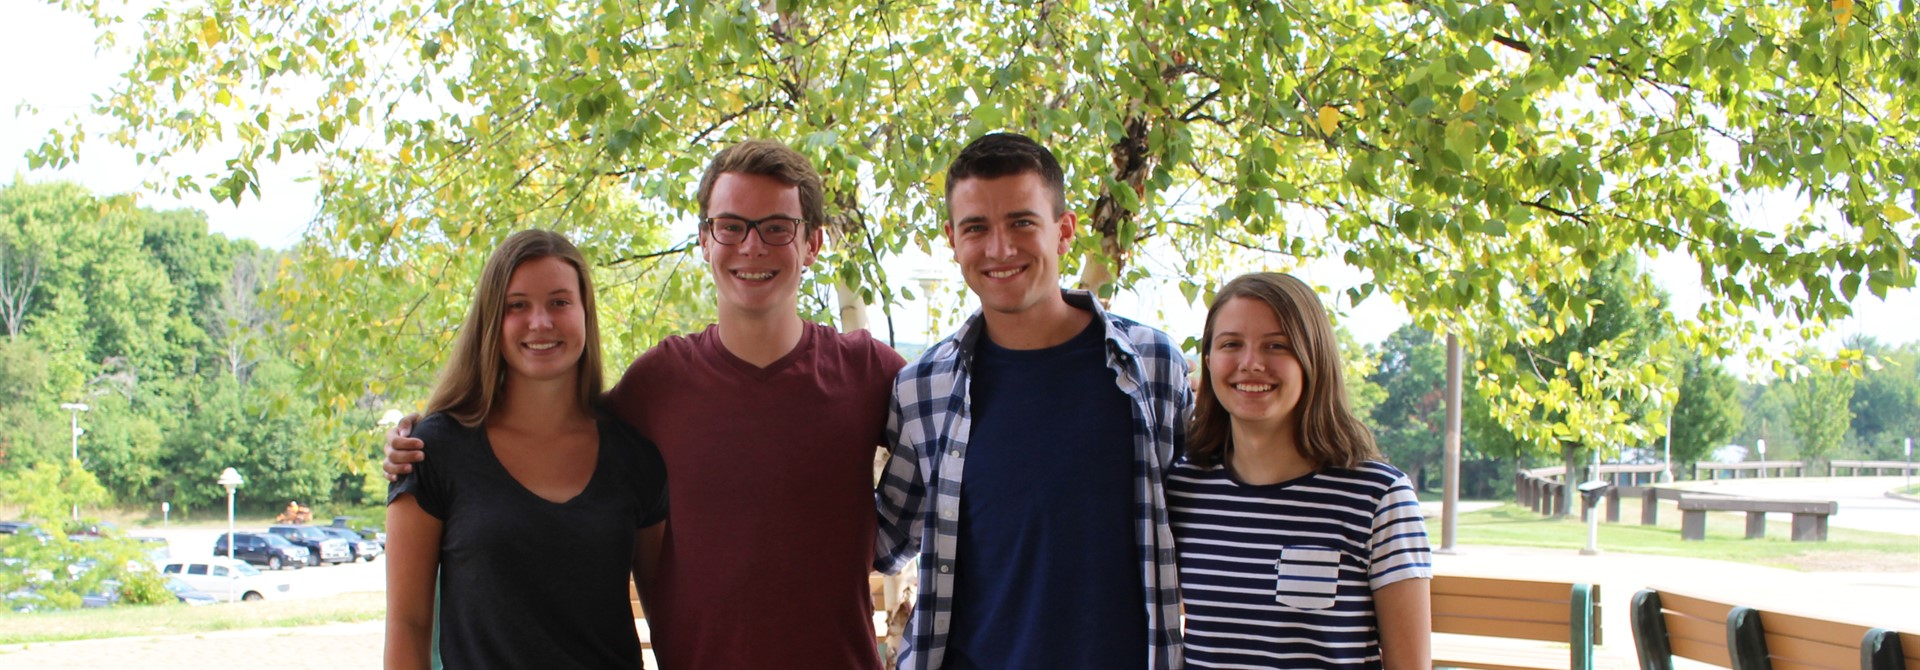 2017 National Merit FINALISTS: Alaina Monroe, Christopher Wright, Braden Webb, Kelly Meaden